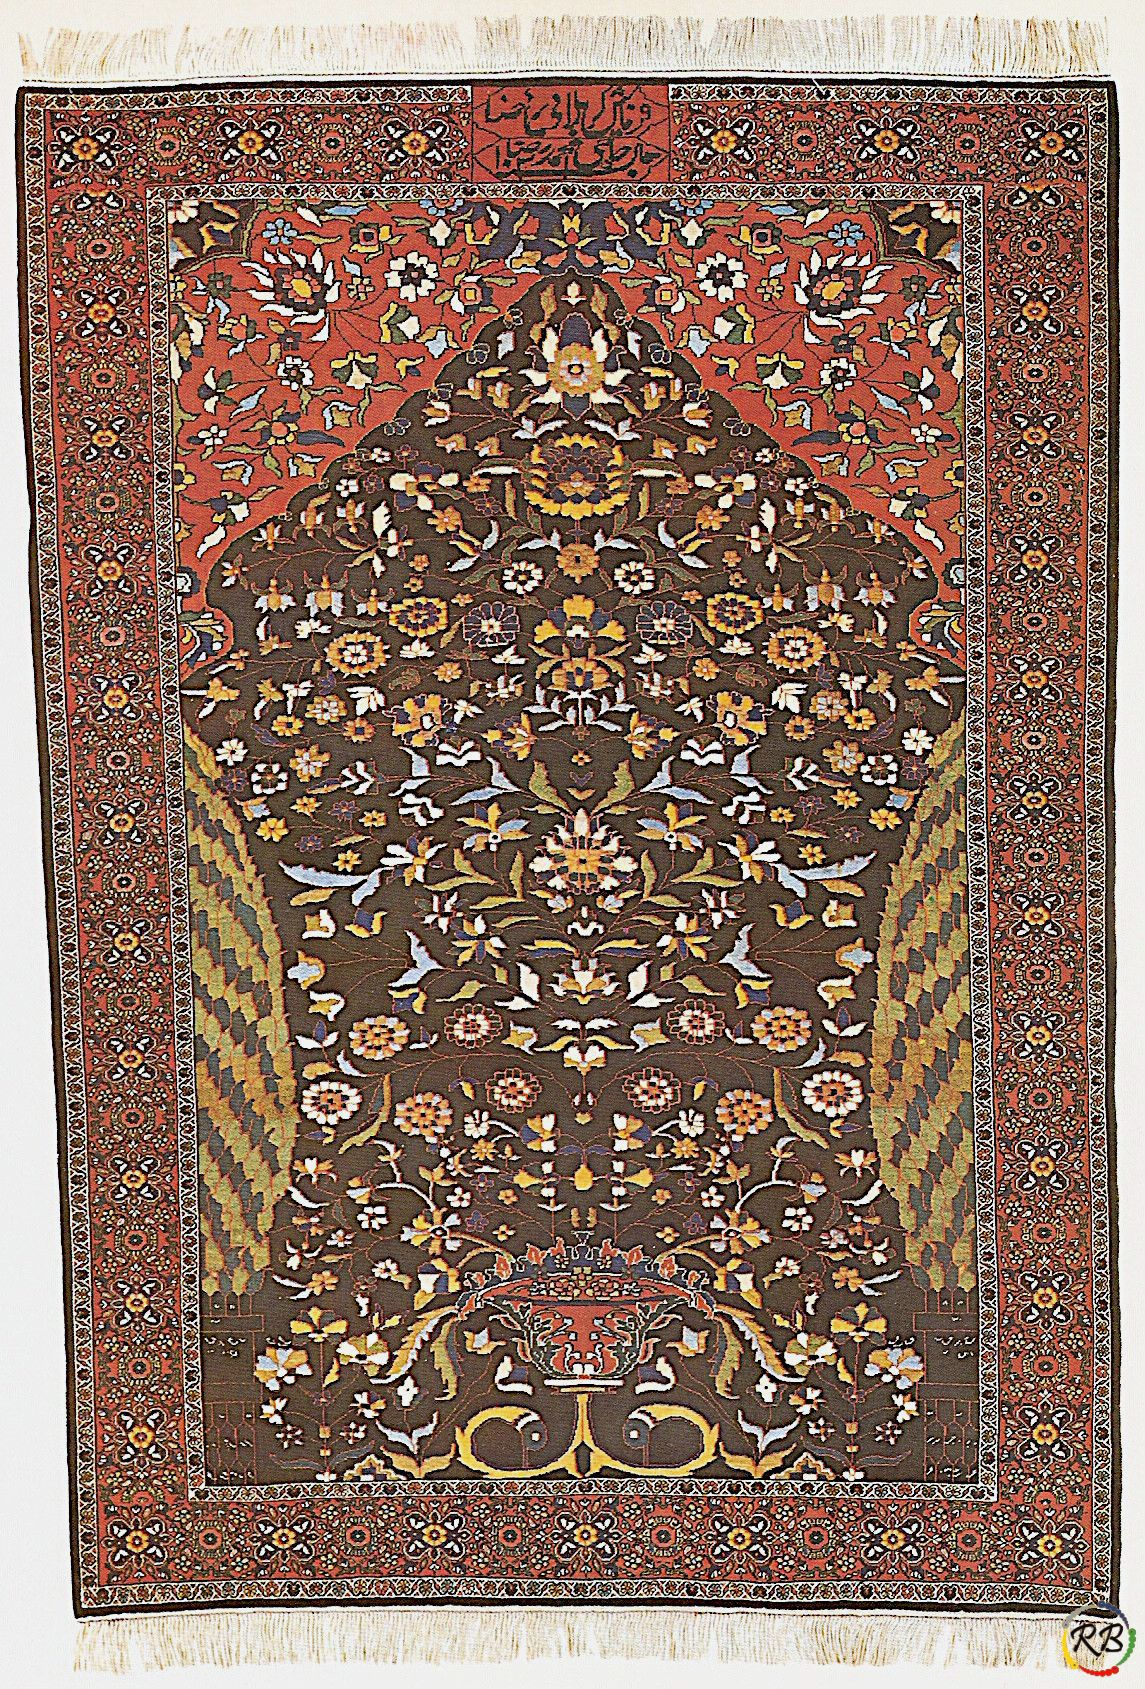 Sarouk Iran Persia 144x205 In 2020 Rugs On Carpet Bohemian Rug Rugs